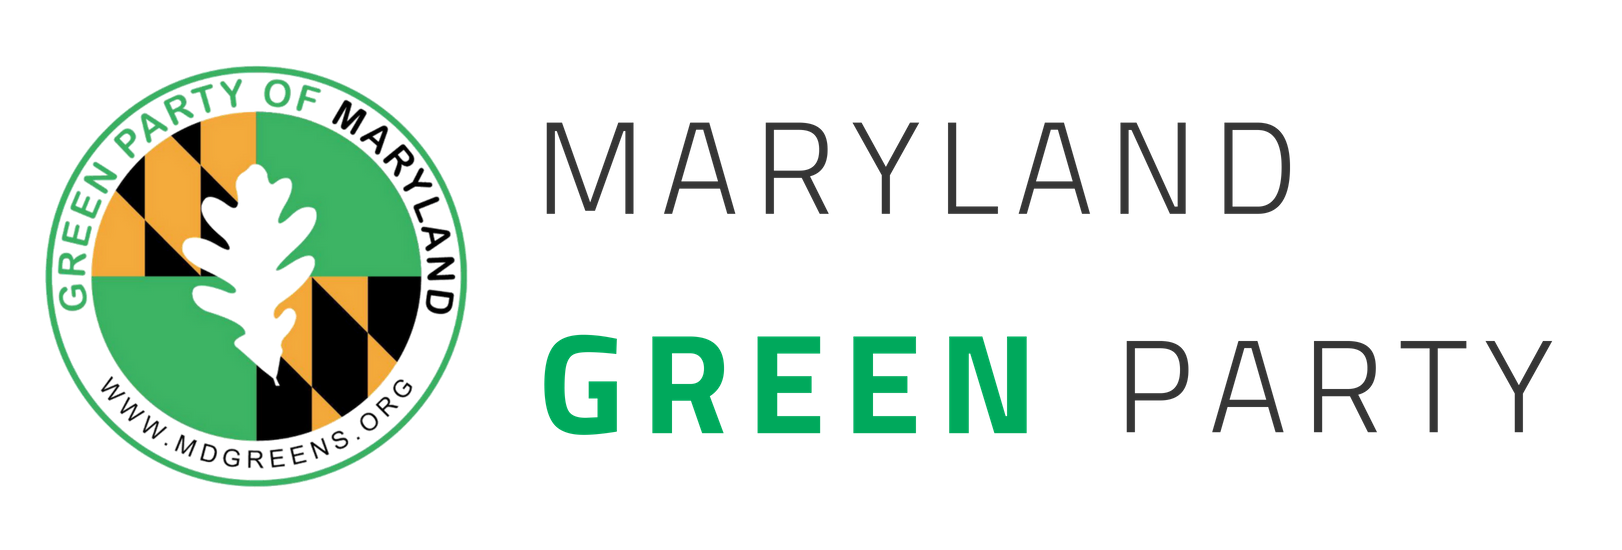 New Party - Maryland Green Party